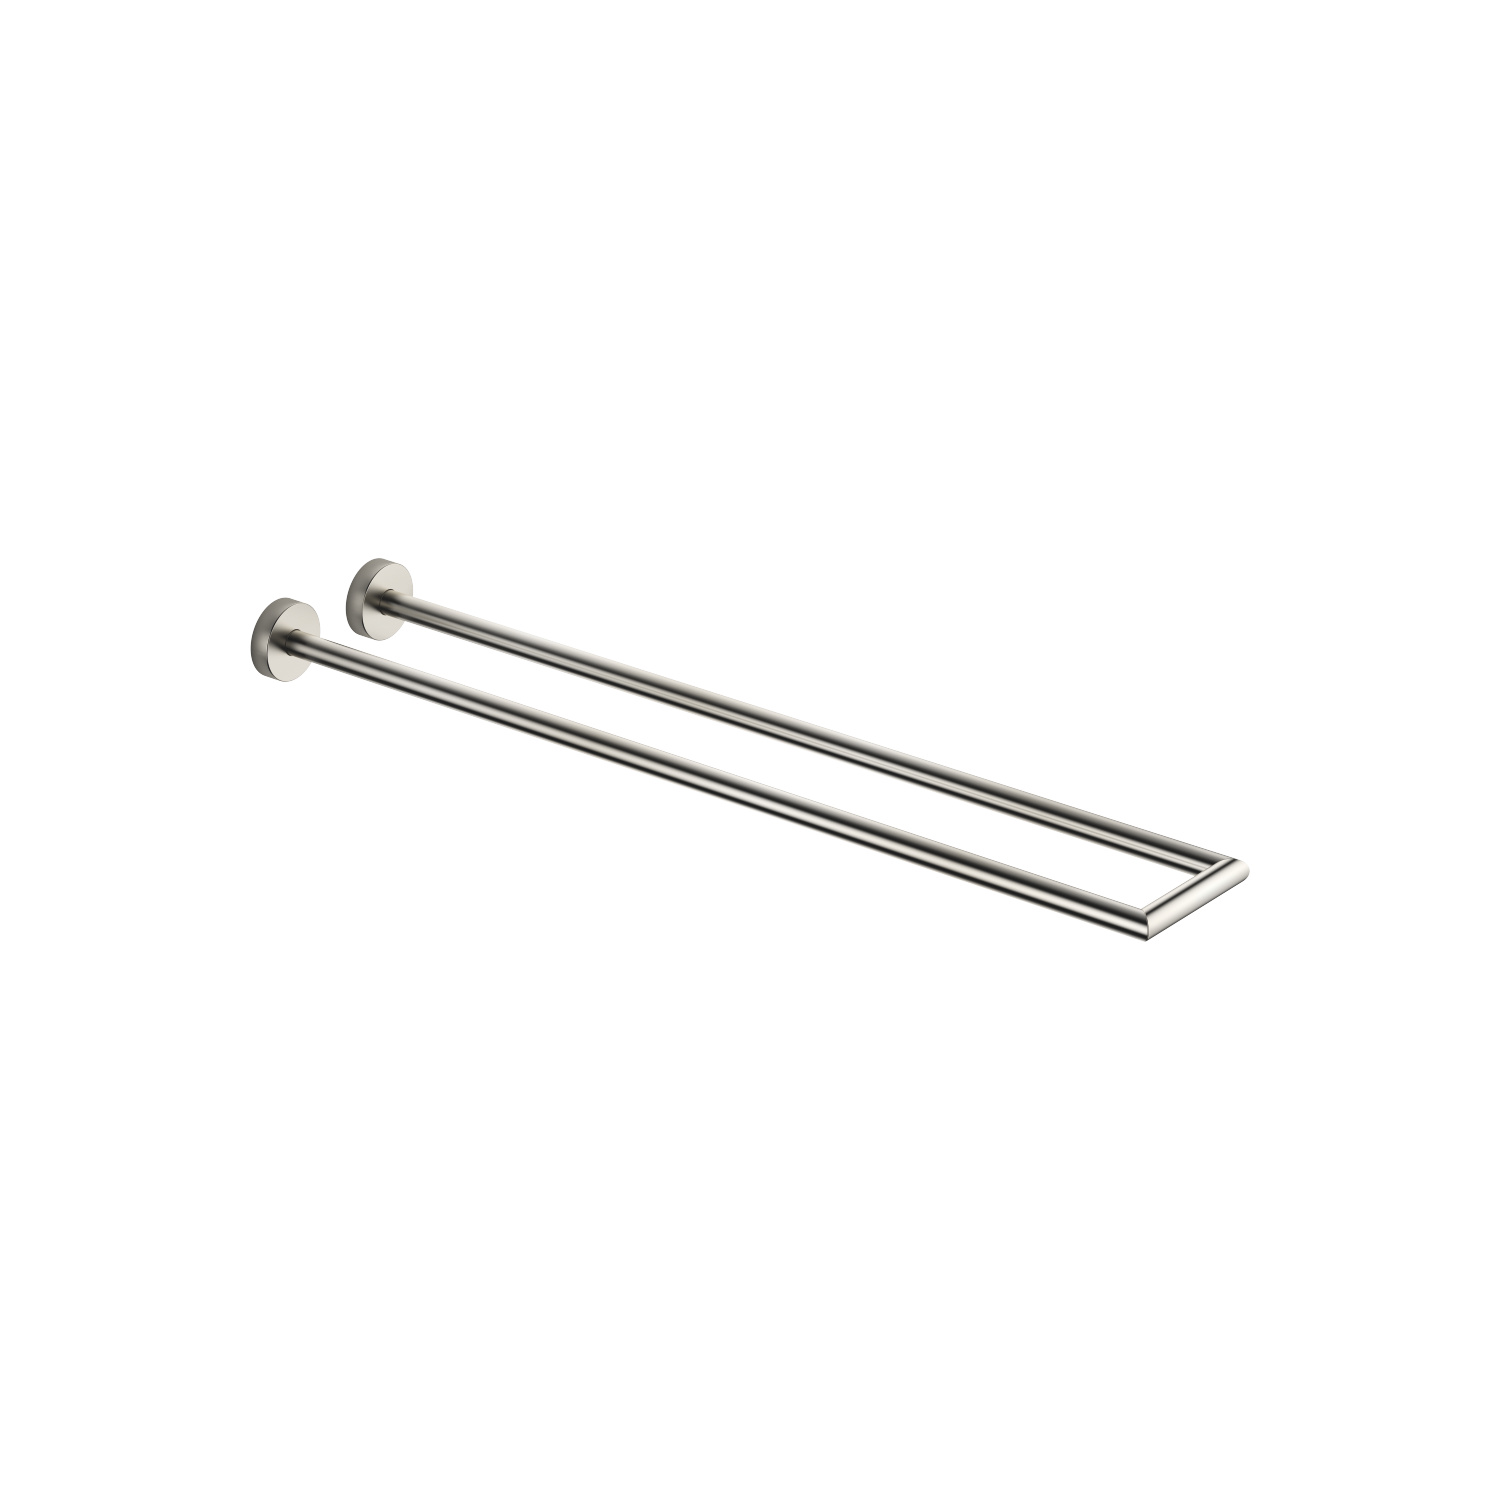 Towel bar two-piece fixed - platinum matte